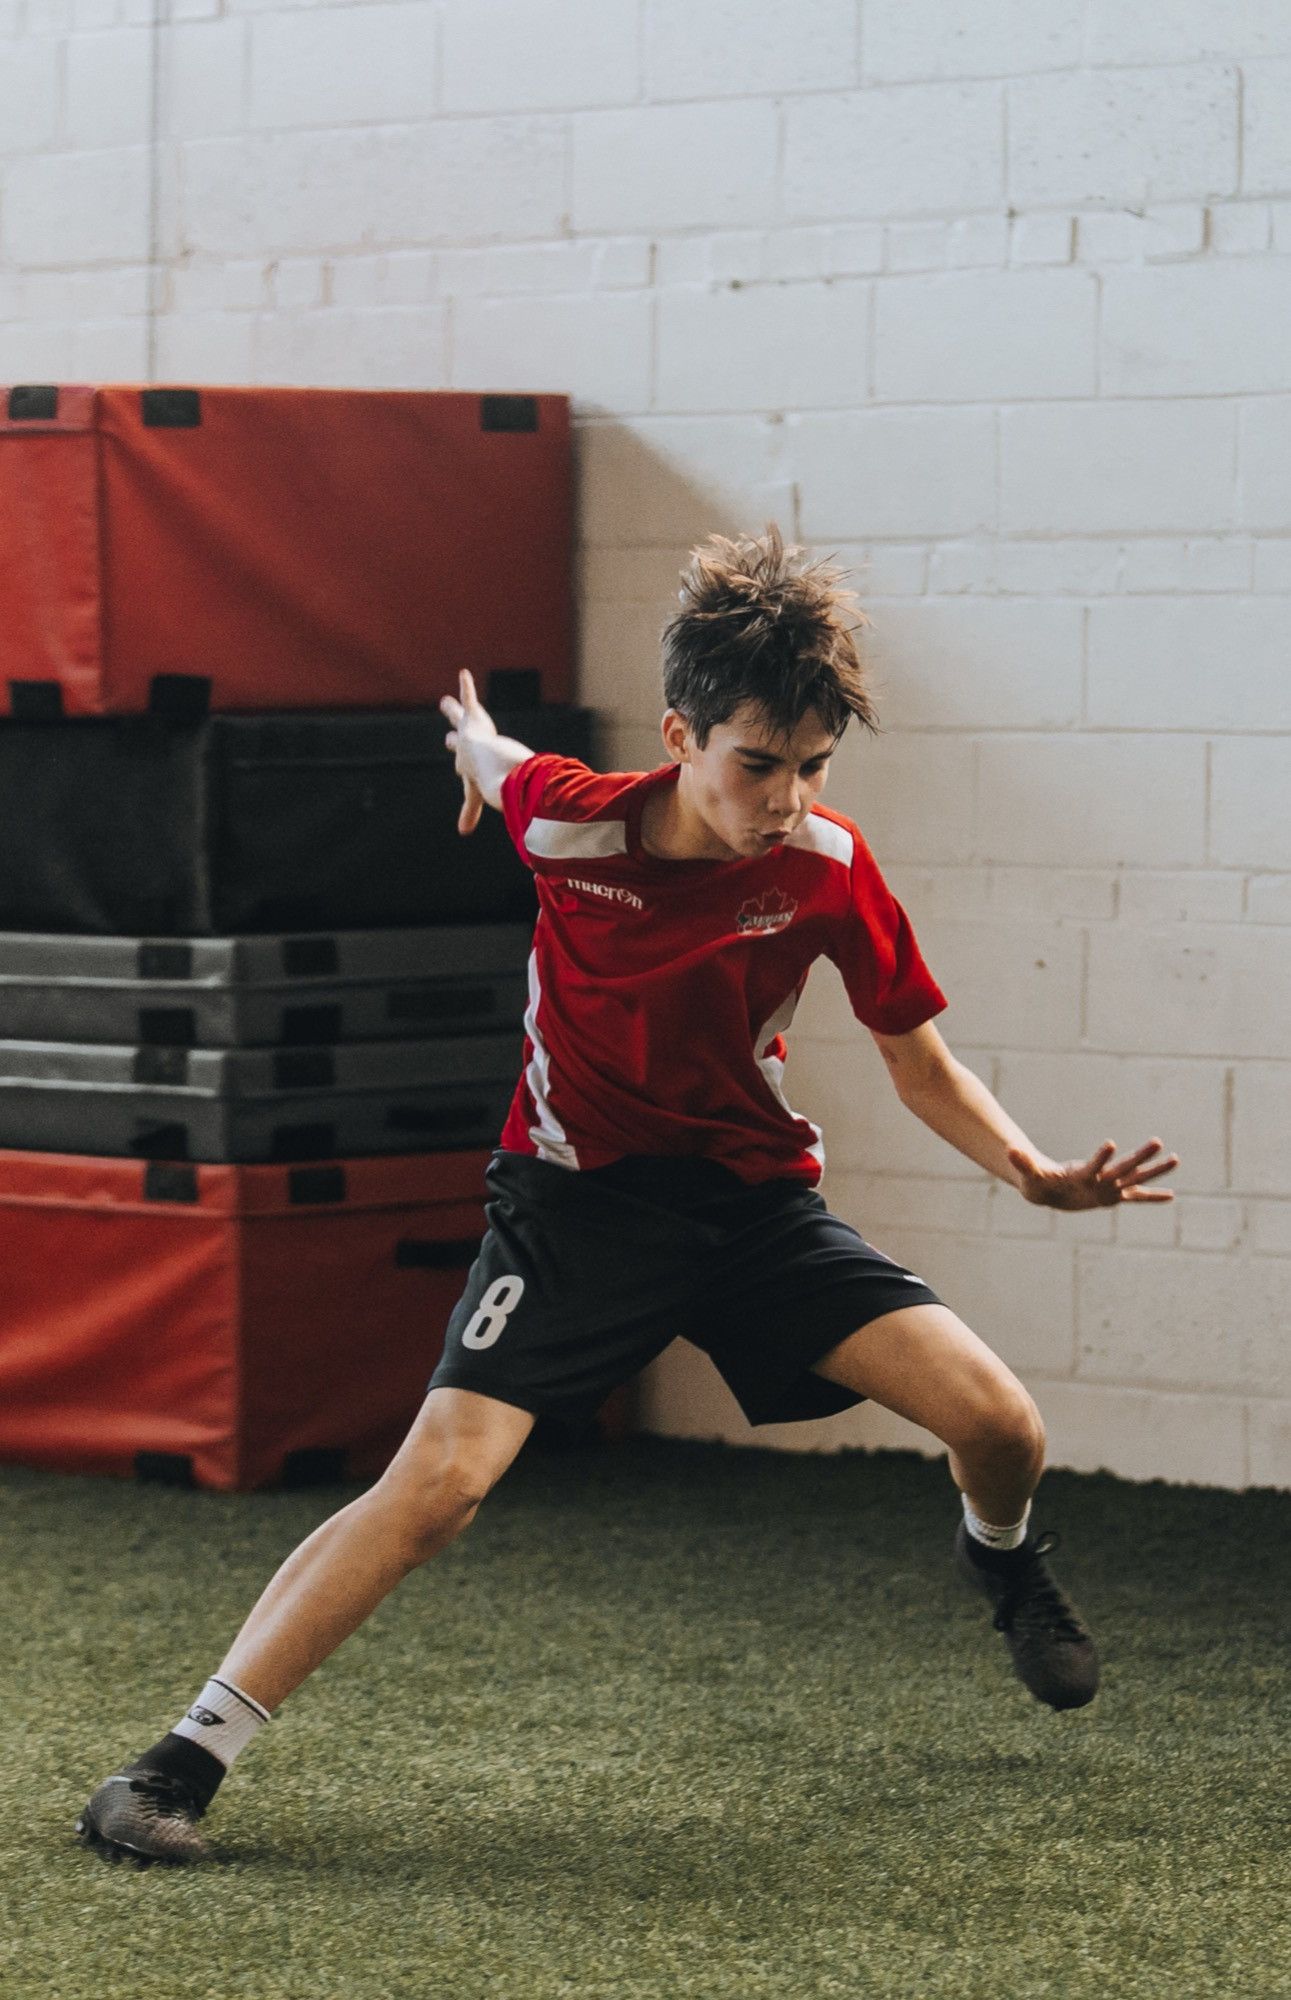 180° YOUTH HIGH PERFORMANCE